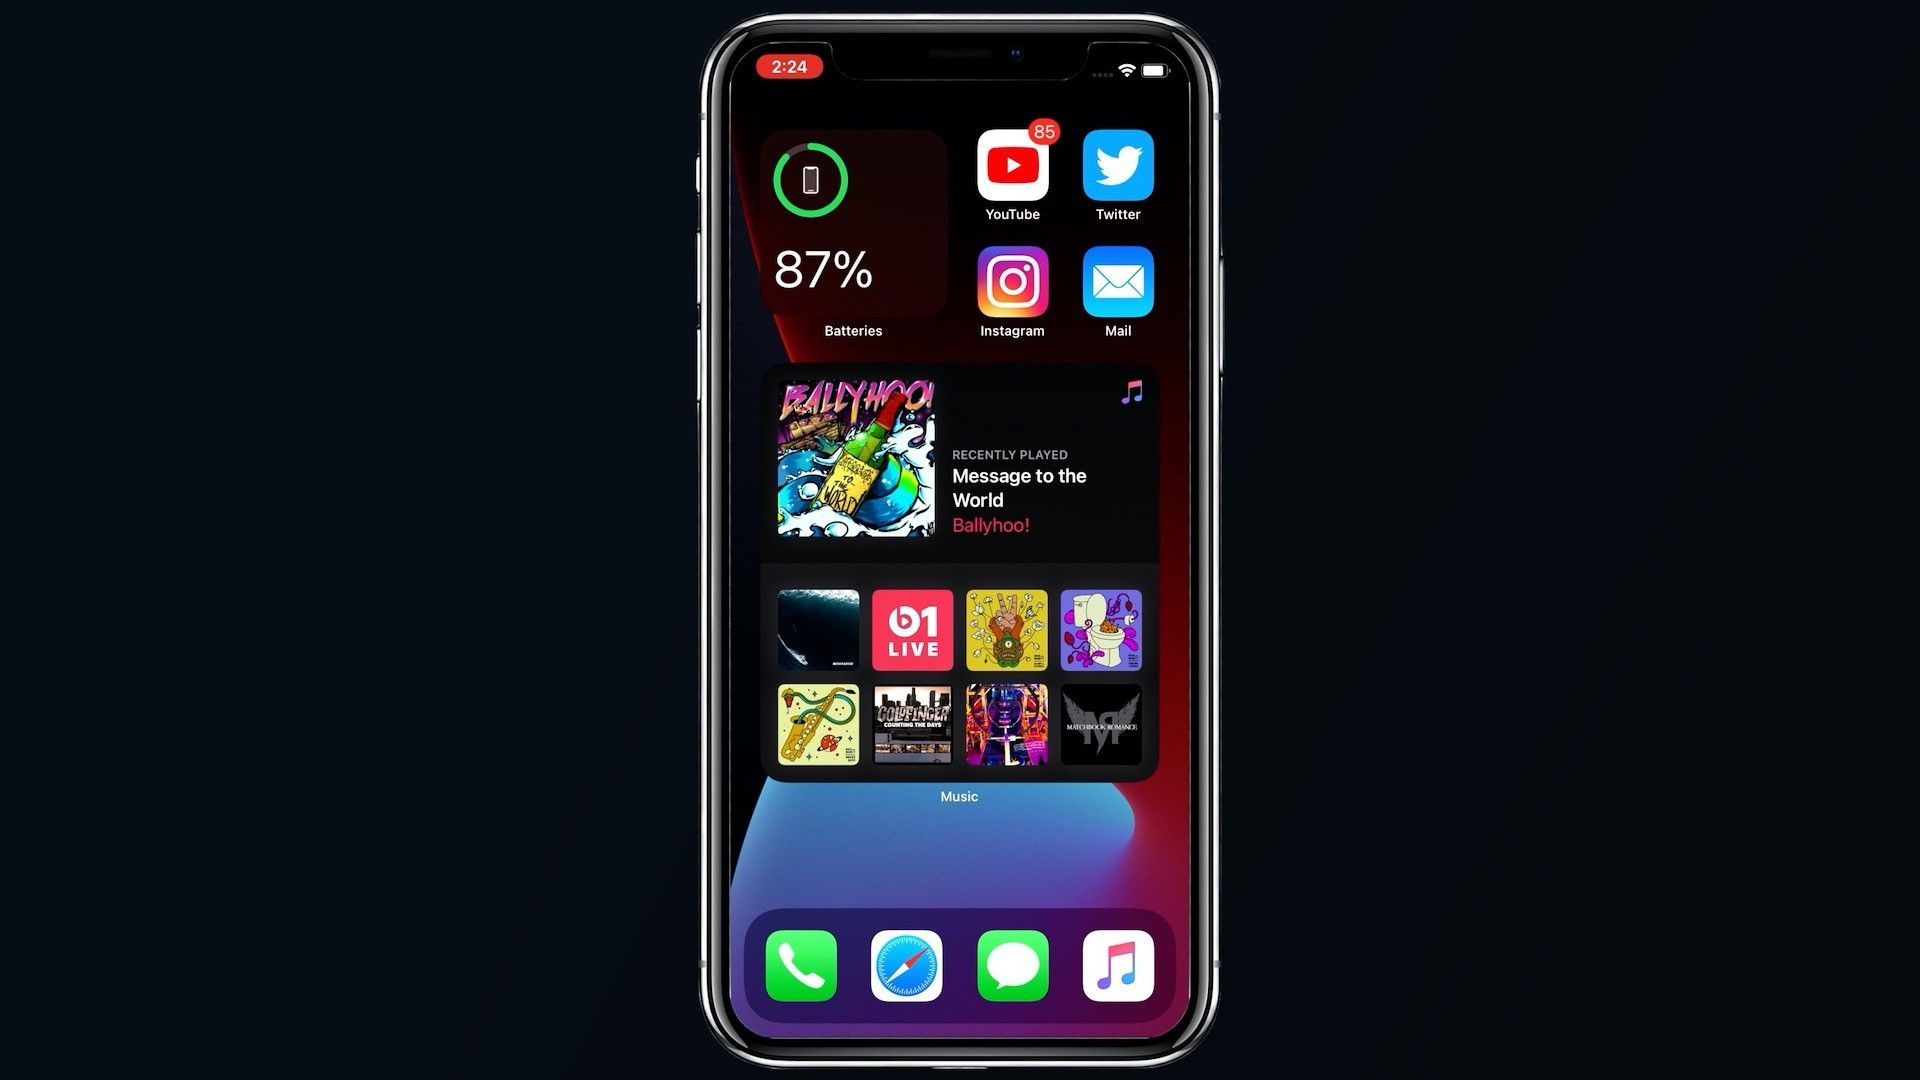 First Look See Ios 14 In Action With Home Screen Widgets App Library Subtle Call Alerts And More Macrumors In 2020 Call Alert Homescreen Widget